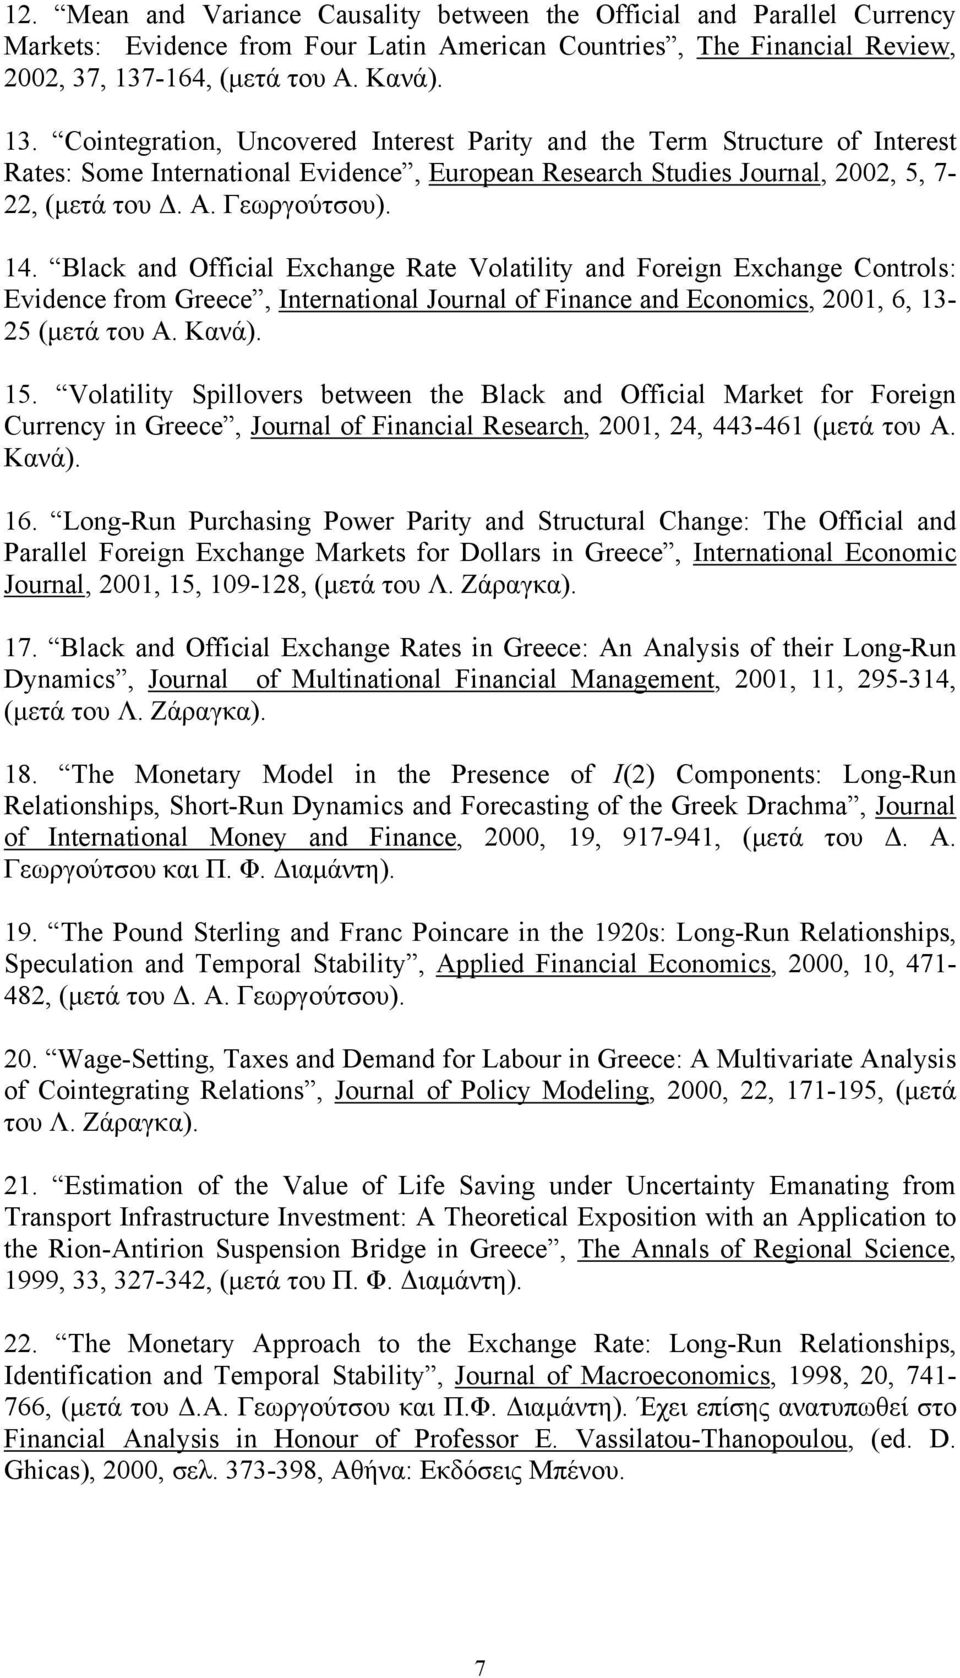 Cointegration, Uncovered Interest Parity and the Term Structure of Interest Rates: Some International Evidence, European Research Studies Journal, 2002, 5, 7-22, (µετά του. Α. Γεωργούτσου). 14.